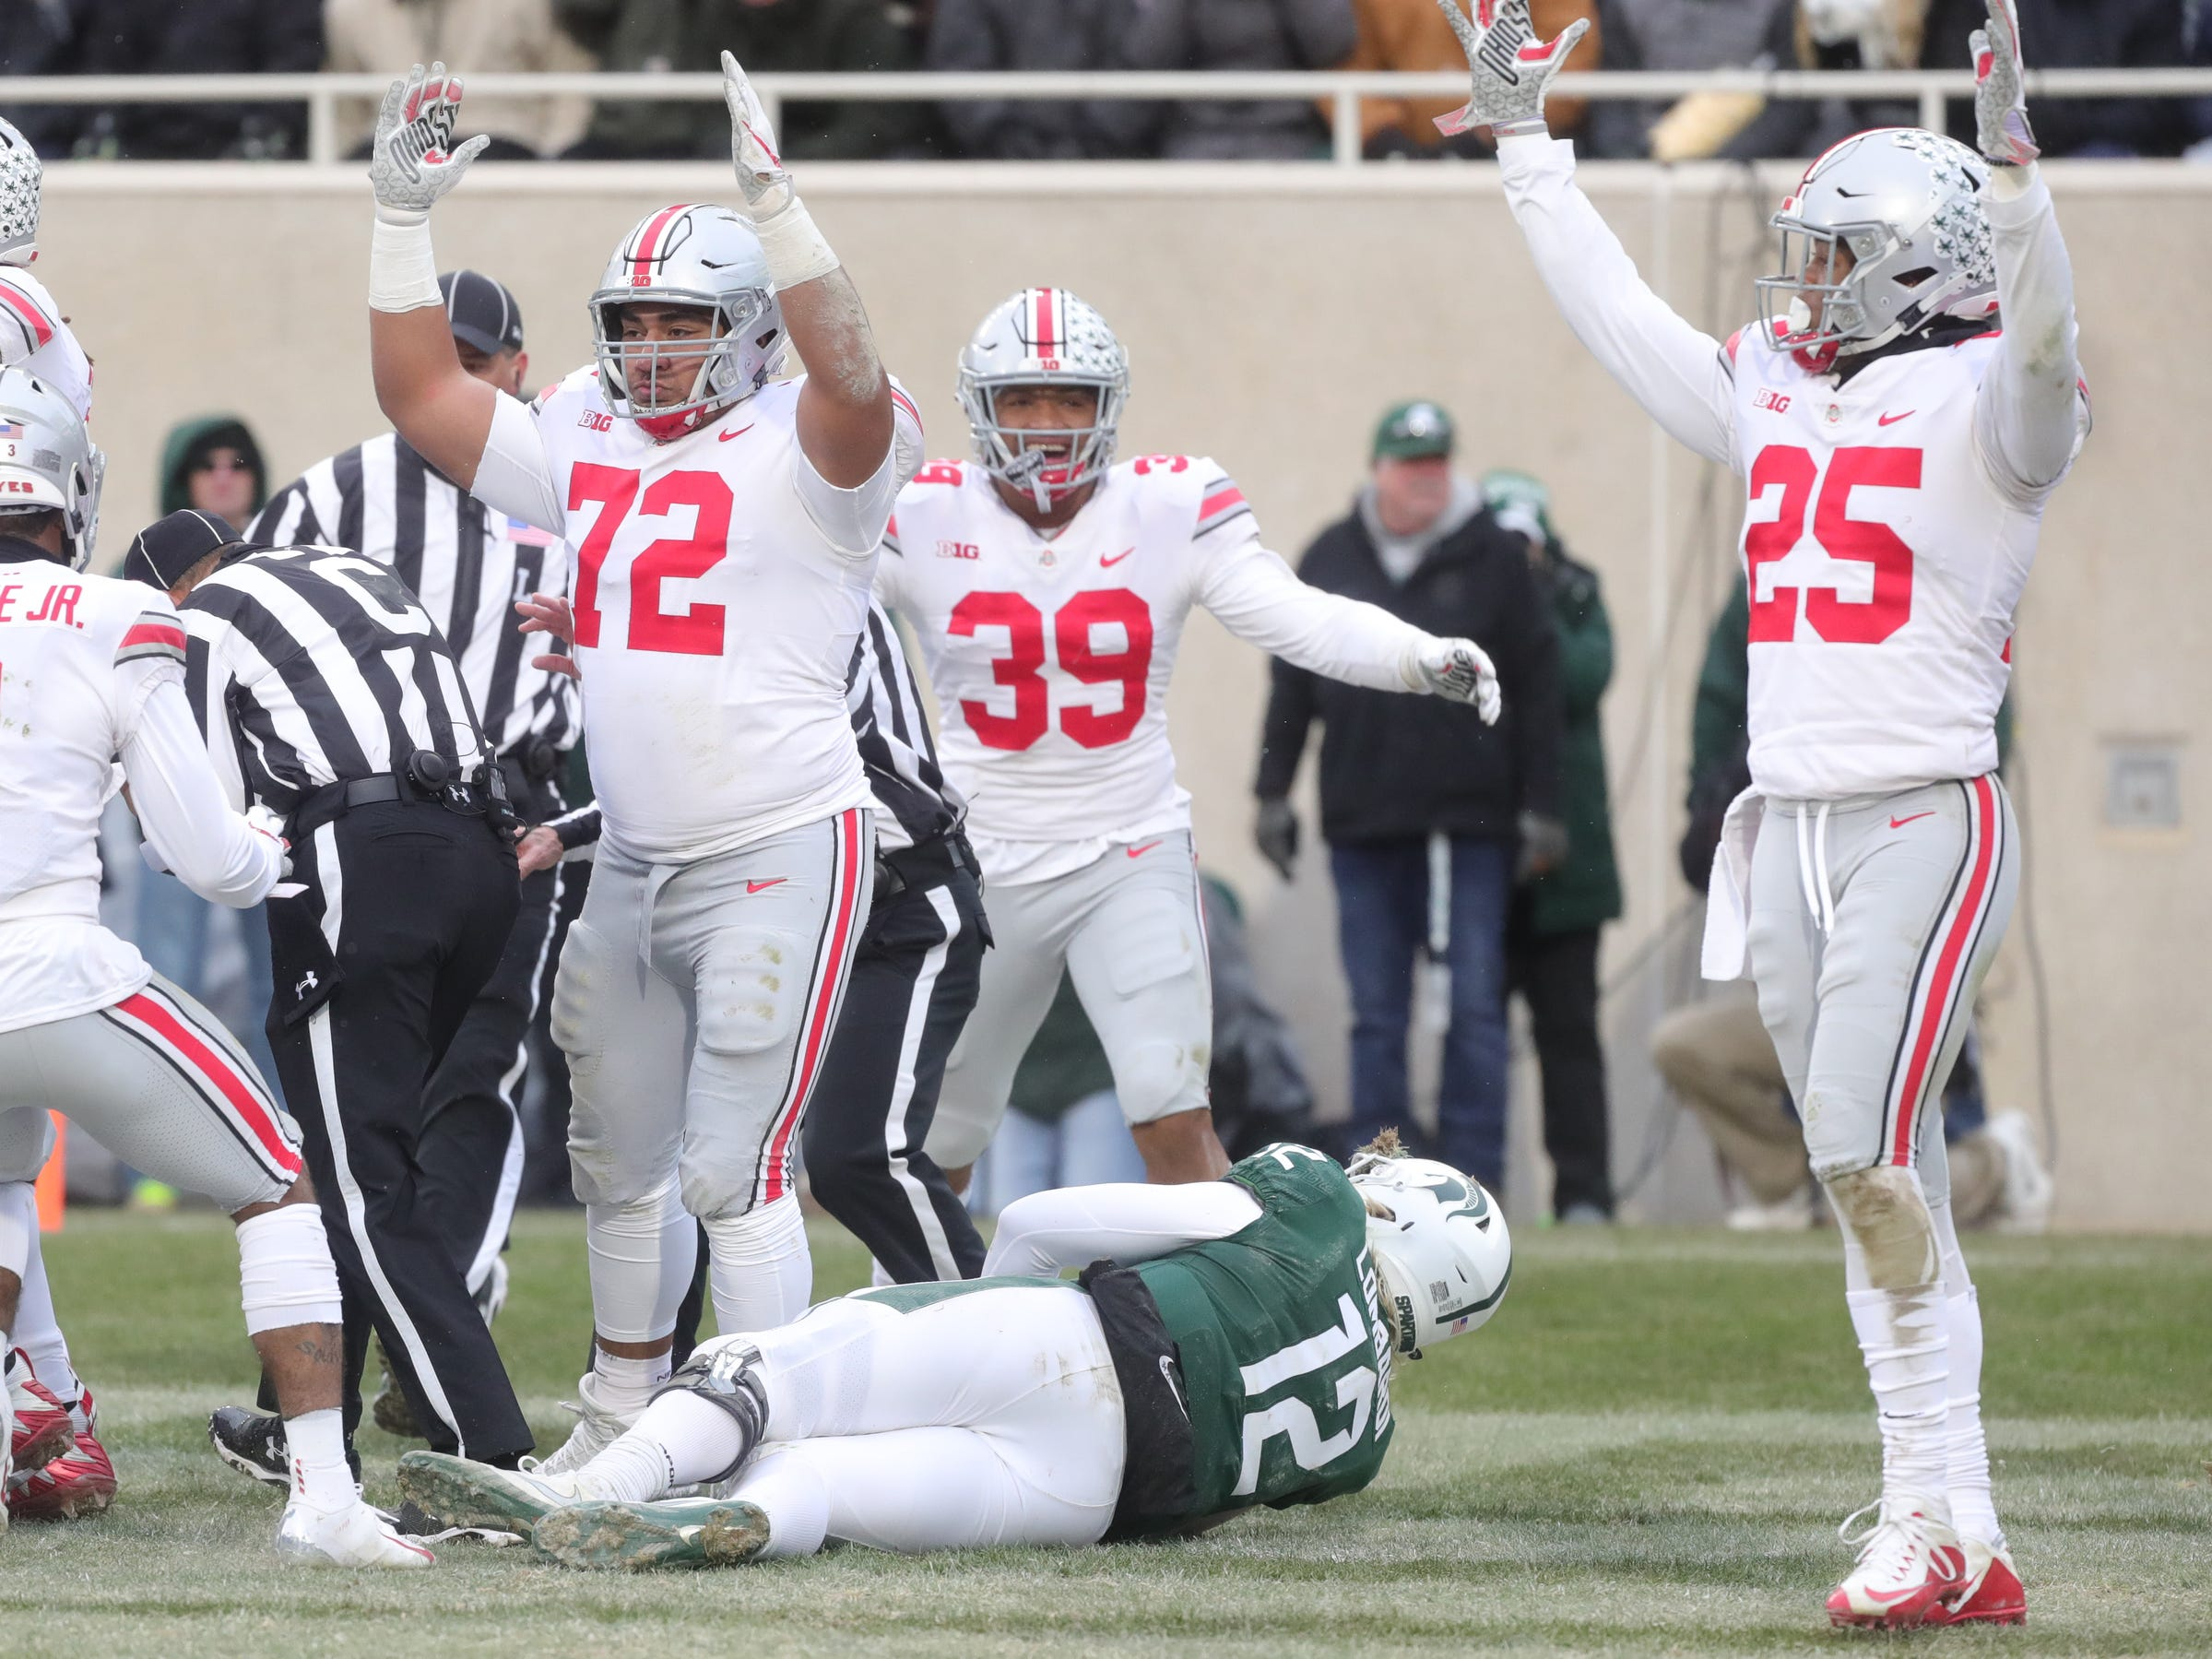 Michigan State's Rocky Lombardi fumbles Ohio State's Jonathon Cooper, who would recover the ball for a touchdown during the second half of the 26-6 loss to Ohio State on Saturday, Nov. 10, 2018, in East Lansing.